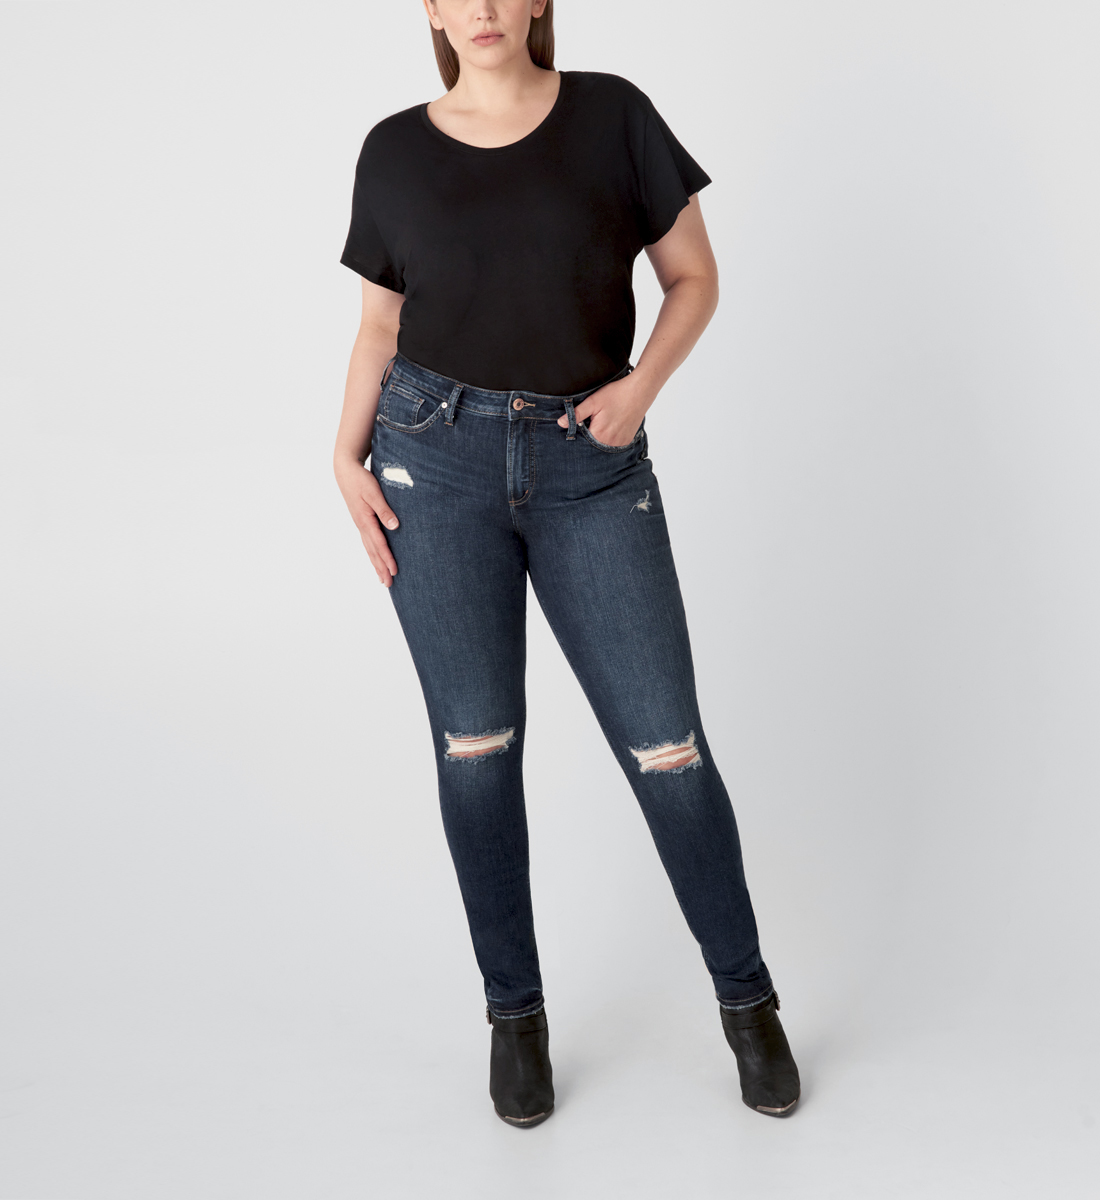 Silver Jeans Avery High Rise Skinny Jeans Plus Size